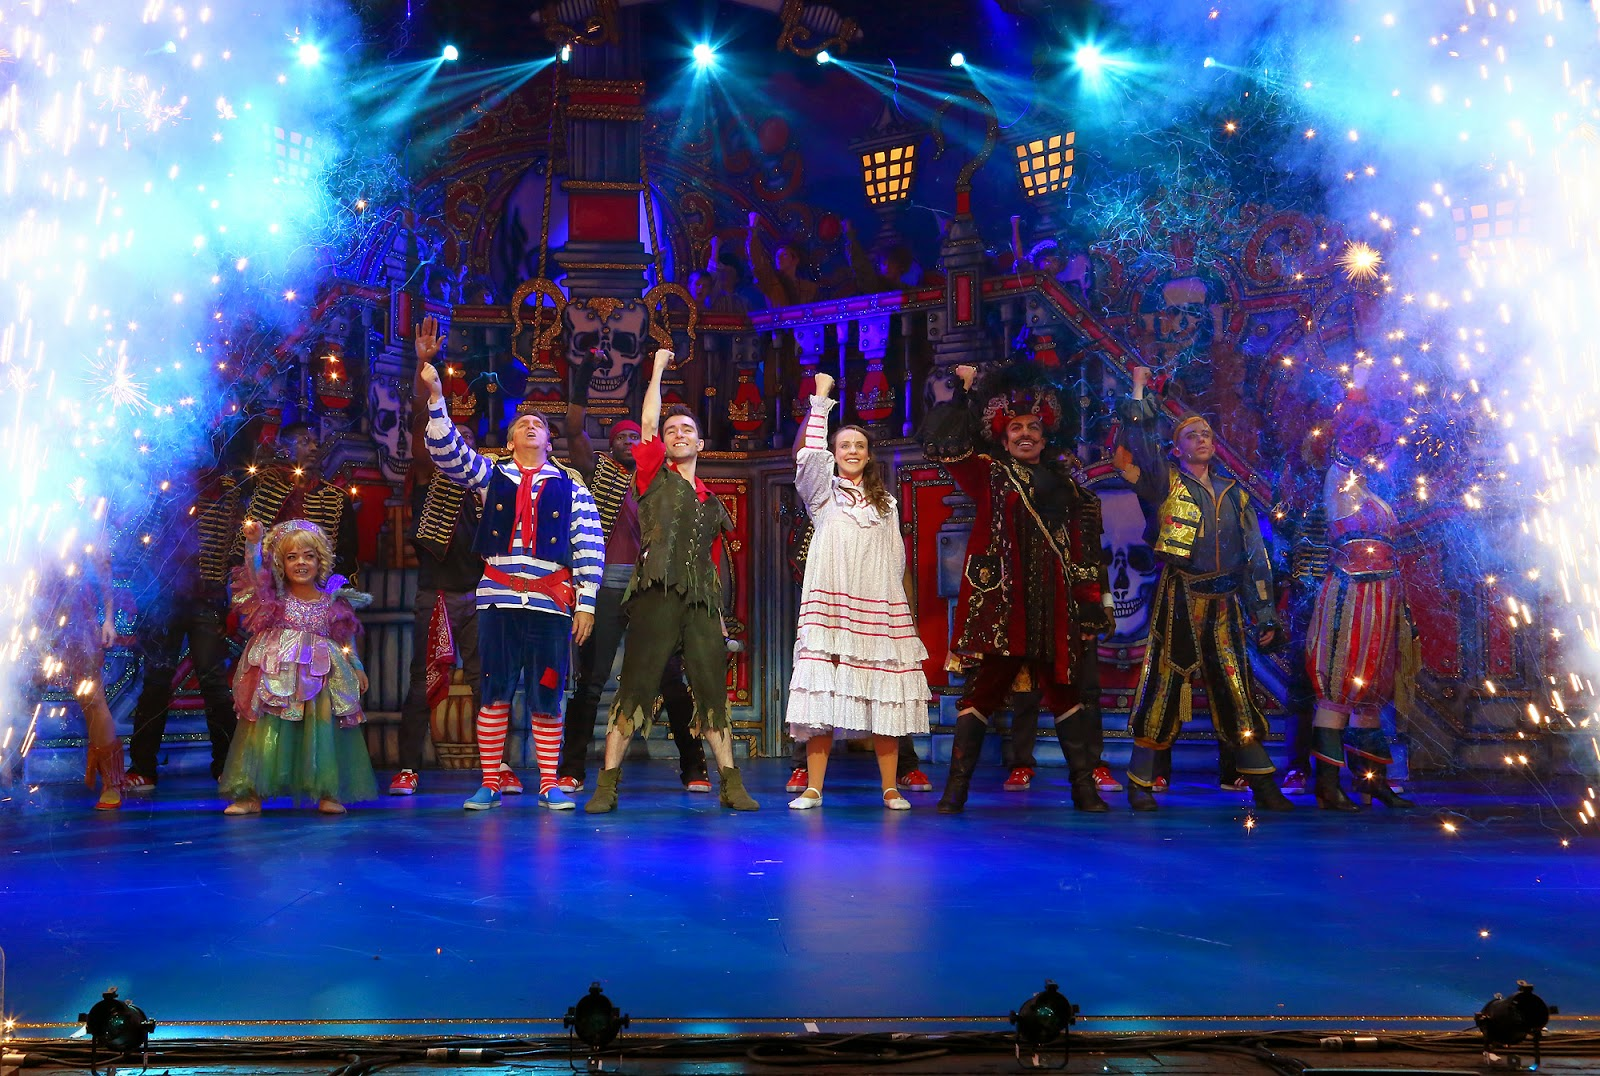 Peter Pan Panto at Milton Keynes Theatre December 2014